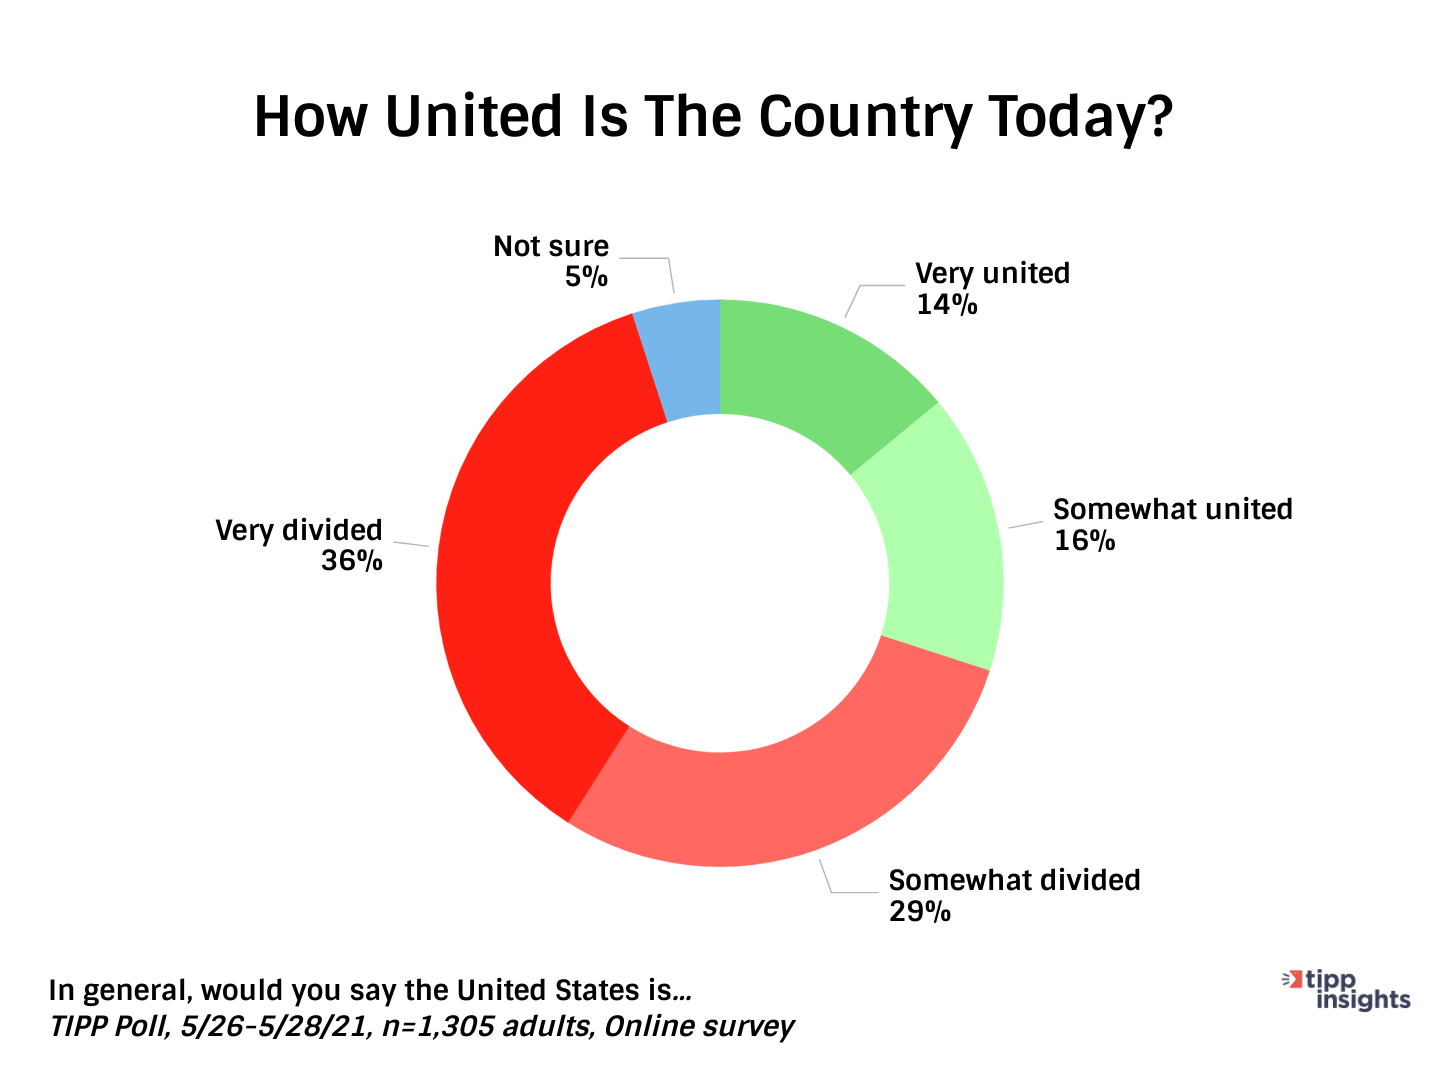 TIPP Poll On Americans And How Much They See The US As being Unified